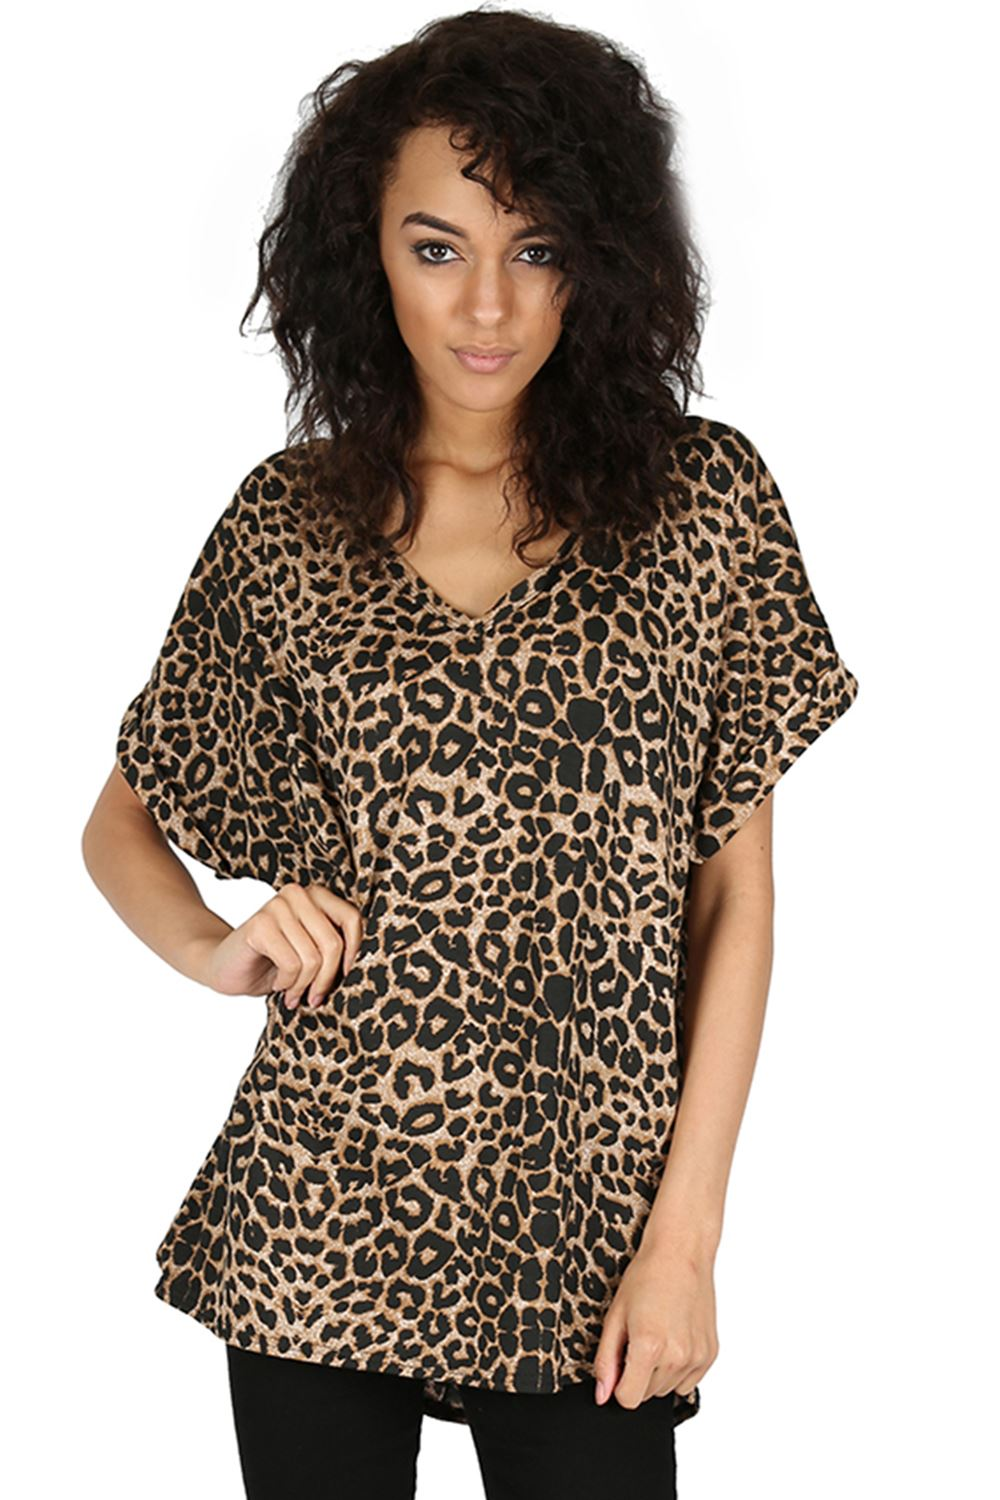 Discover the range of women's shirts and blouses with ASOS. Shop the latest tops, blouses and shirts with ASOS. your browser is not supported. ASOS DESIGN leopard print oversized shirt. £ ASOS DESIGN v neck button through top with pleat detail. £ ASOS DESIGN kimono top .